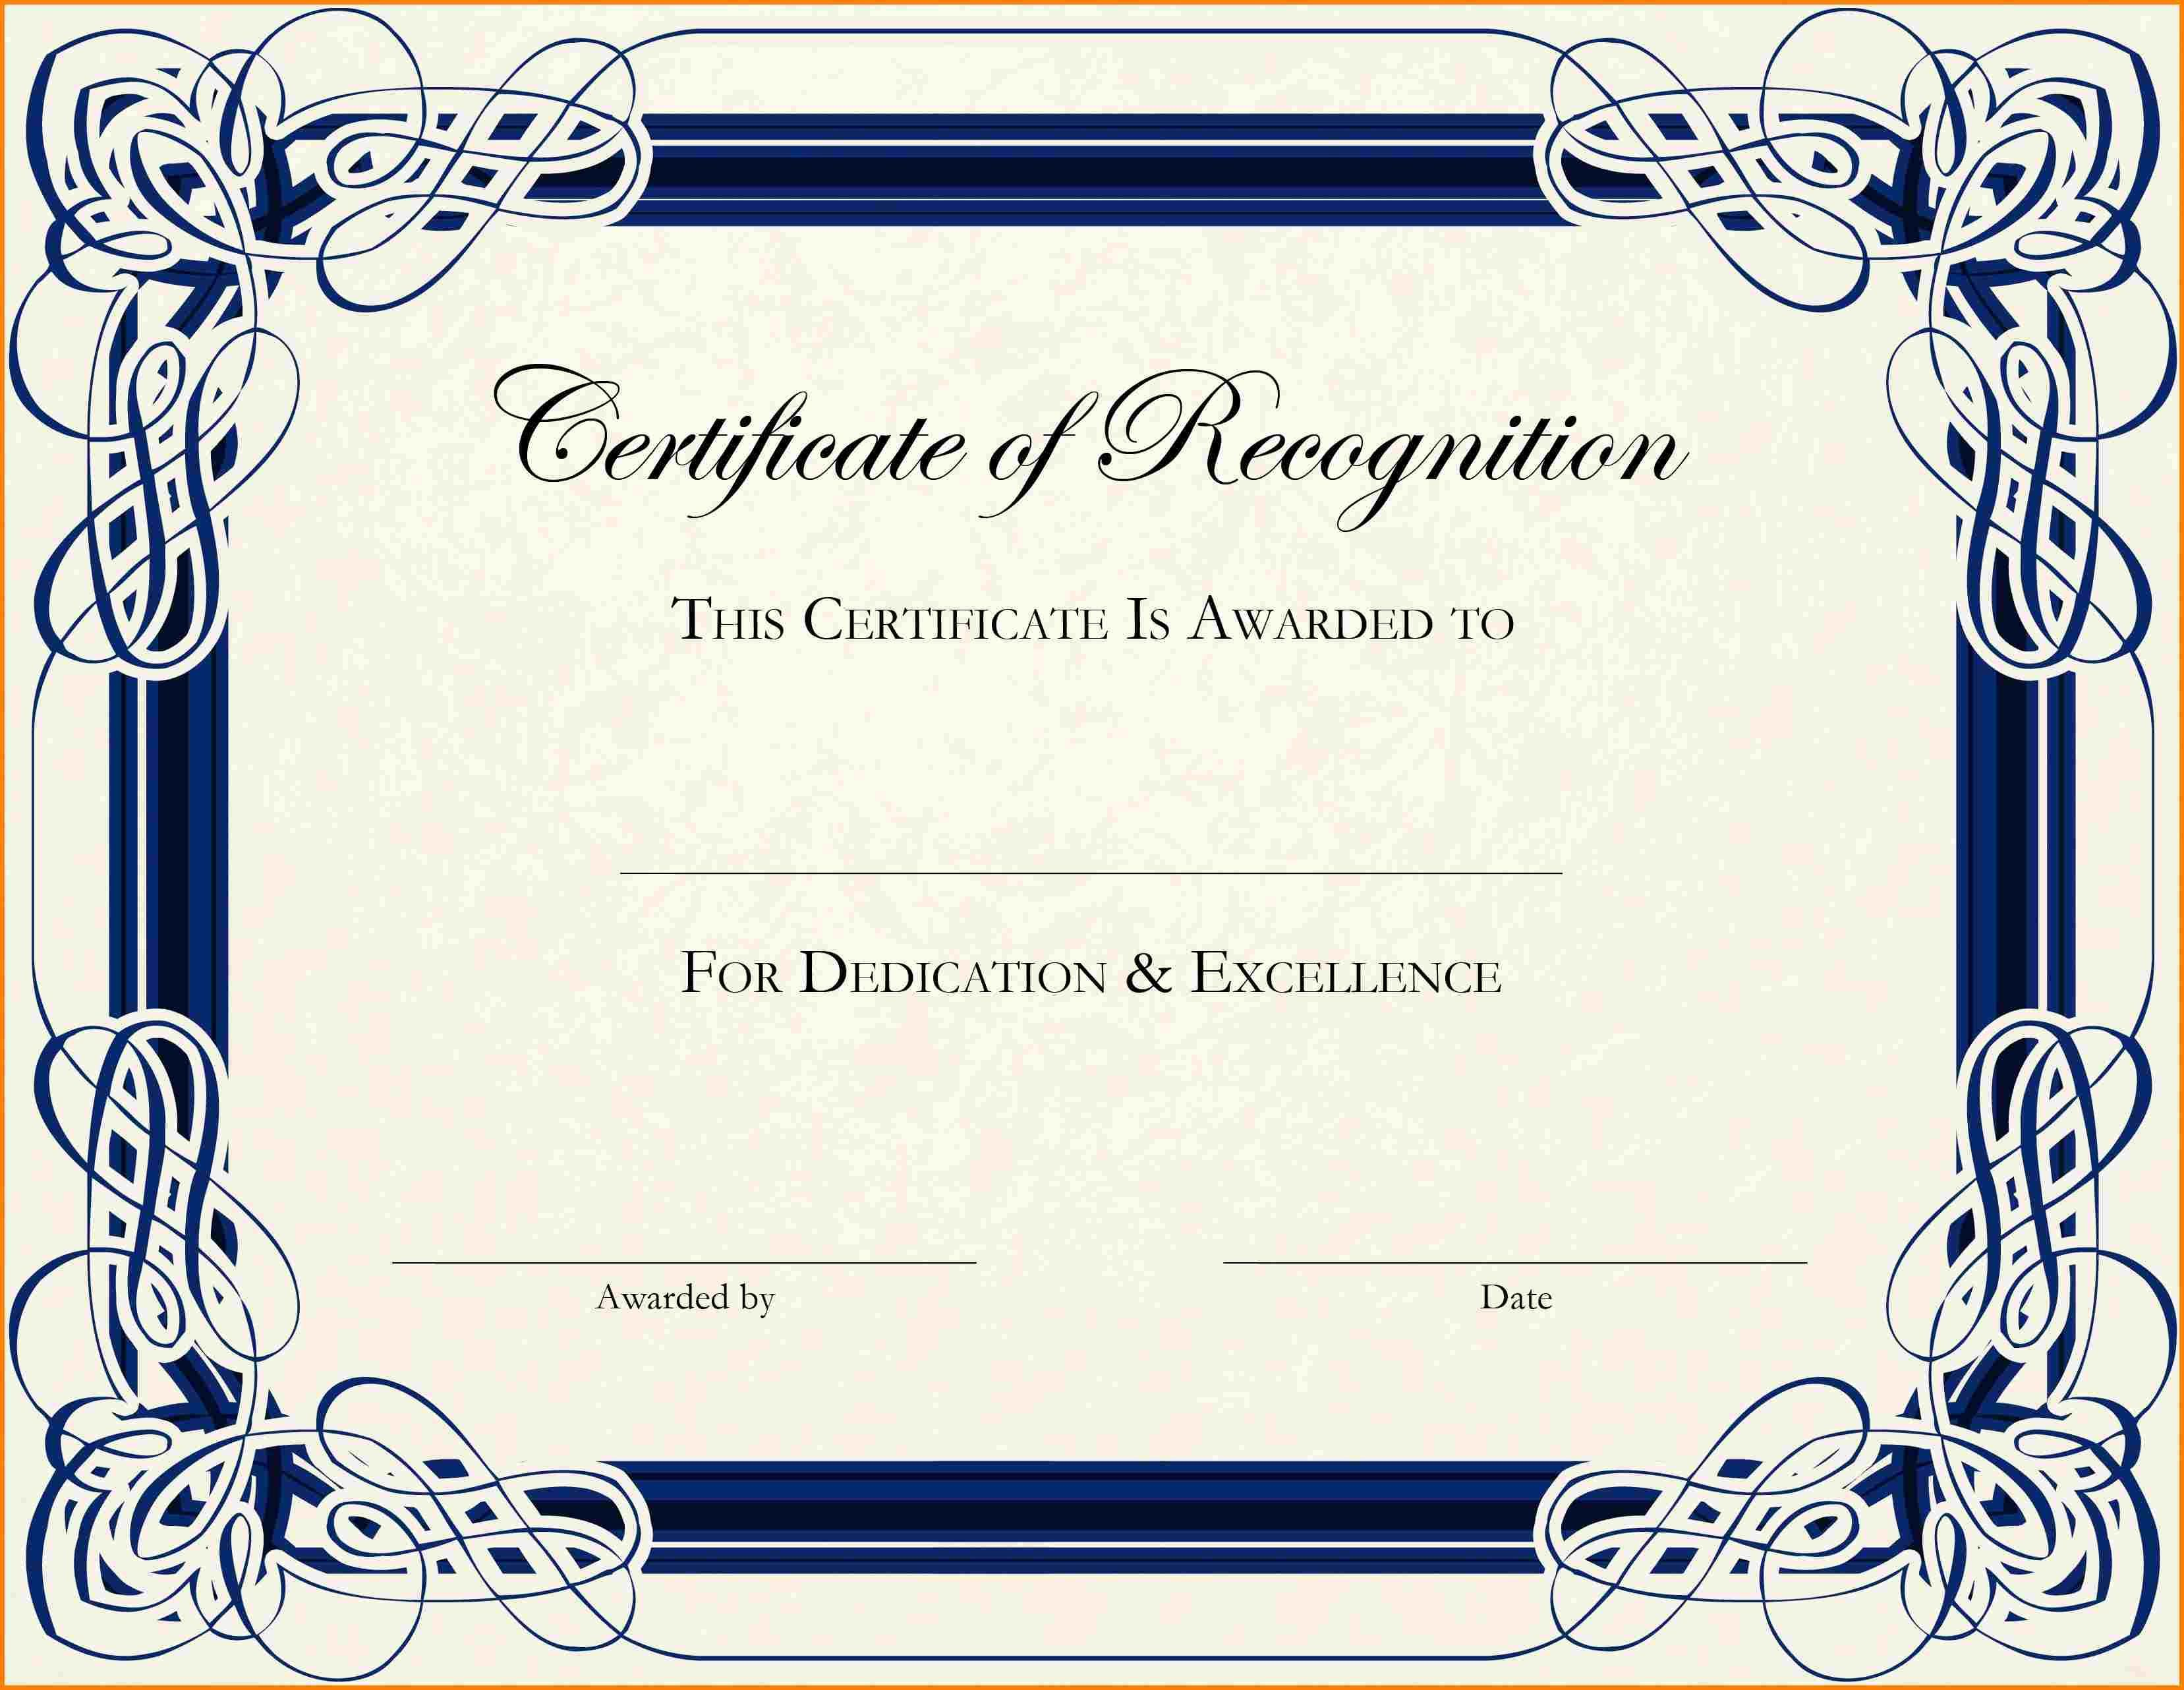 003 Phenomenal Free Printable Certificate Template Photo  Templates Blank Downloadable ParticipationFull